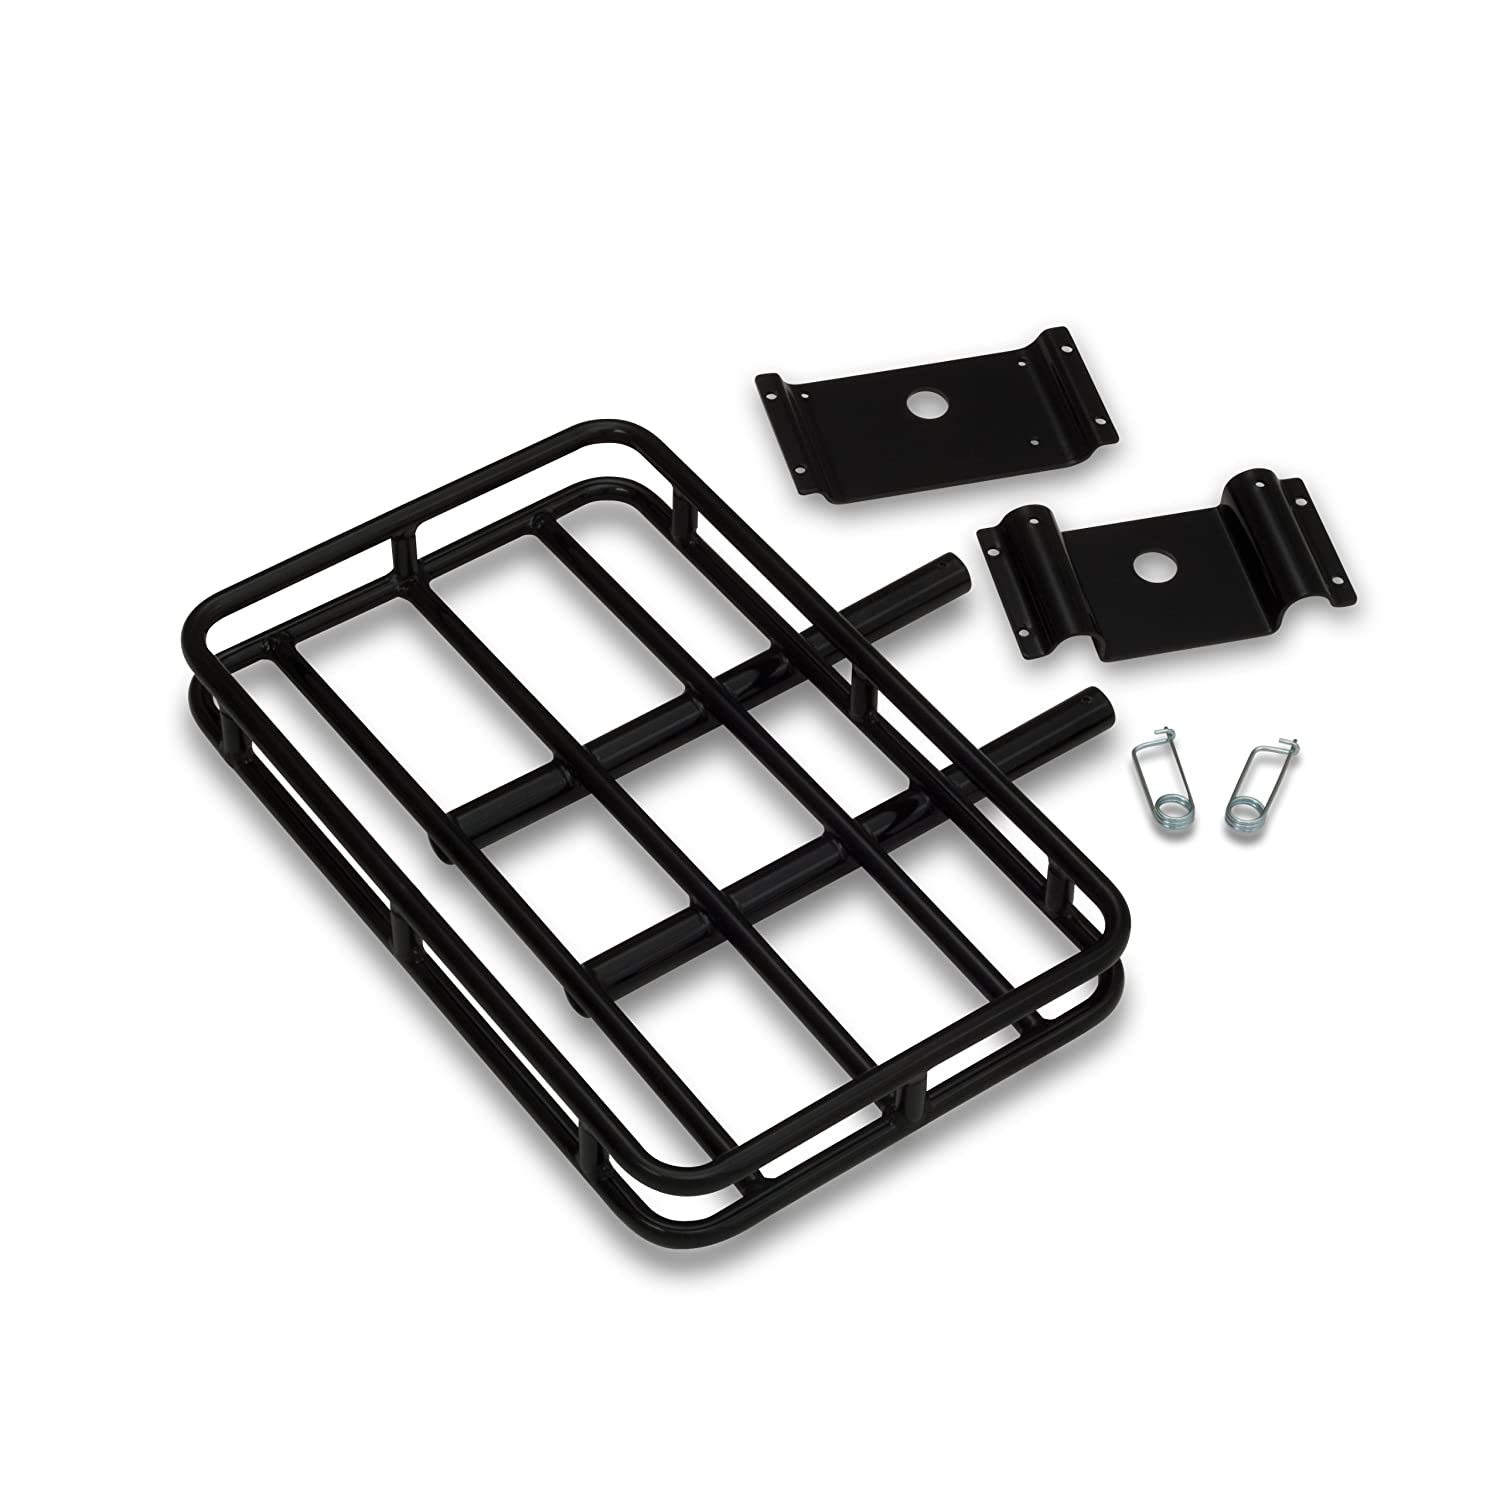 Show Chrome Accessories 52-828 Universal Trailer Hitch Rack